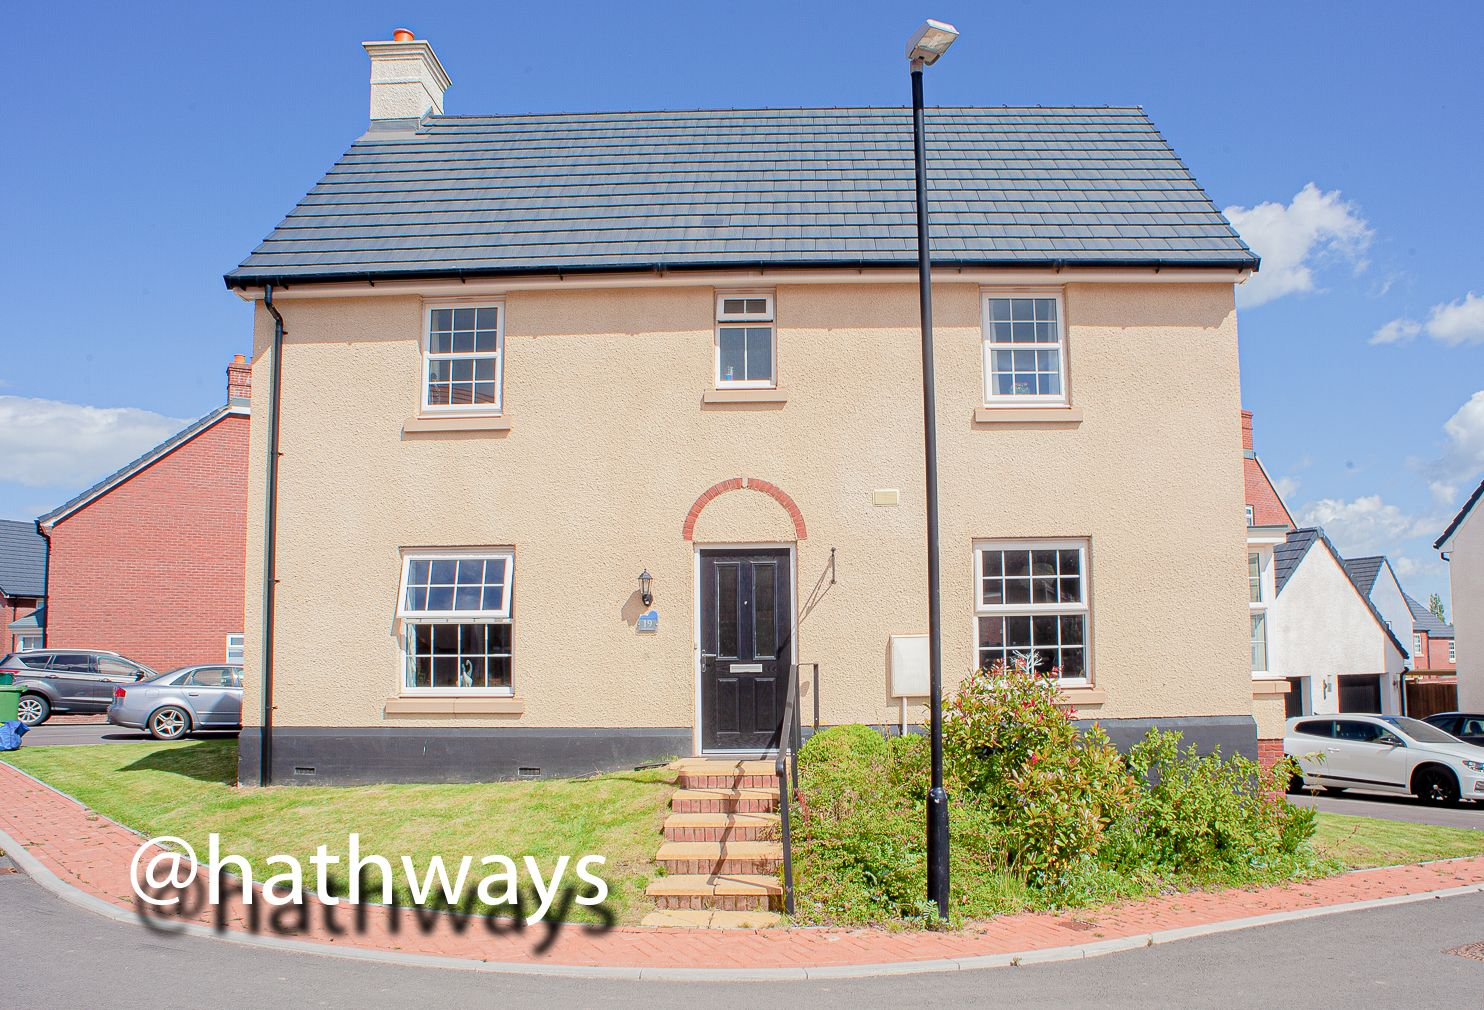 4 bed house for sale in Lon Ffion, NP44